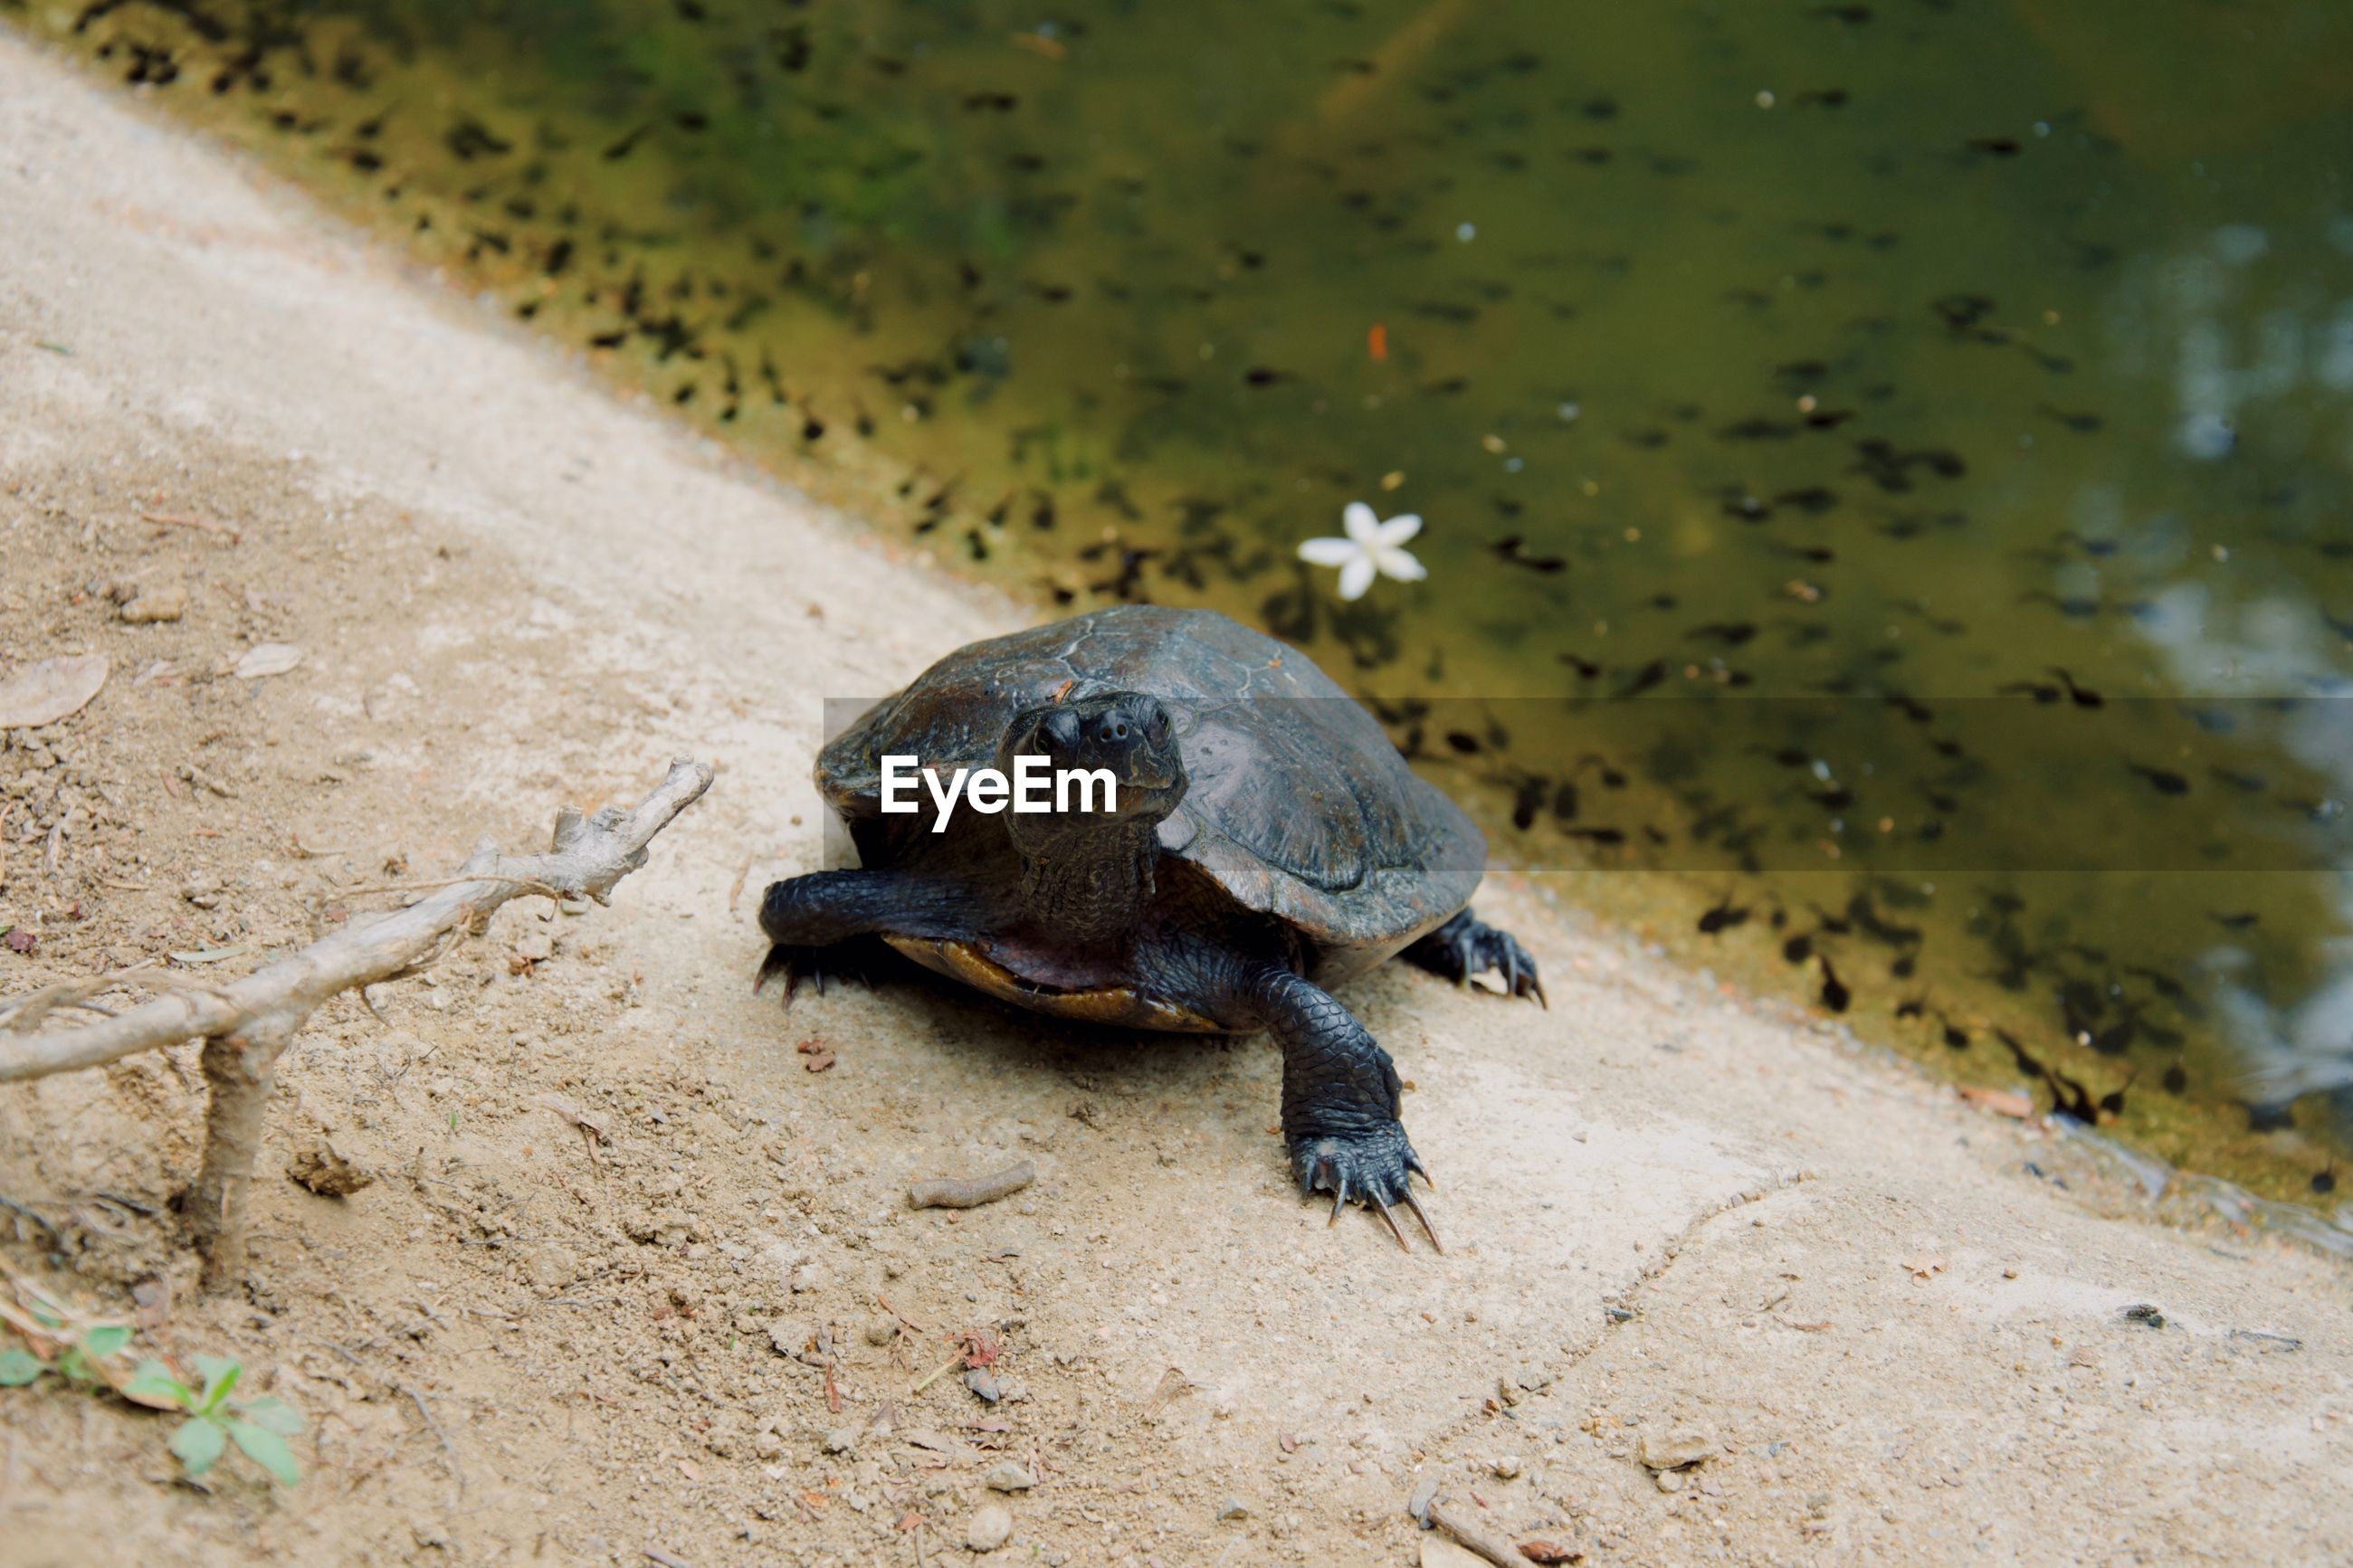 HIGH ANGLE VIEW OF A TURTLE IN WATER